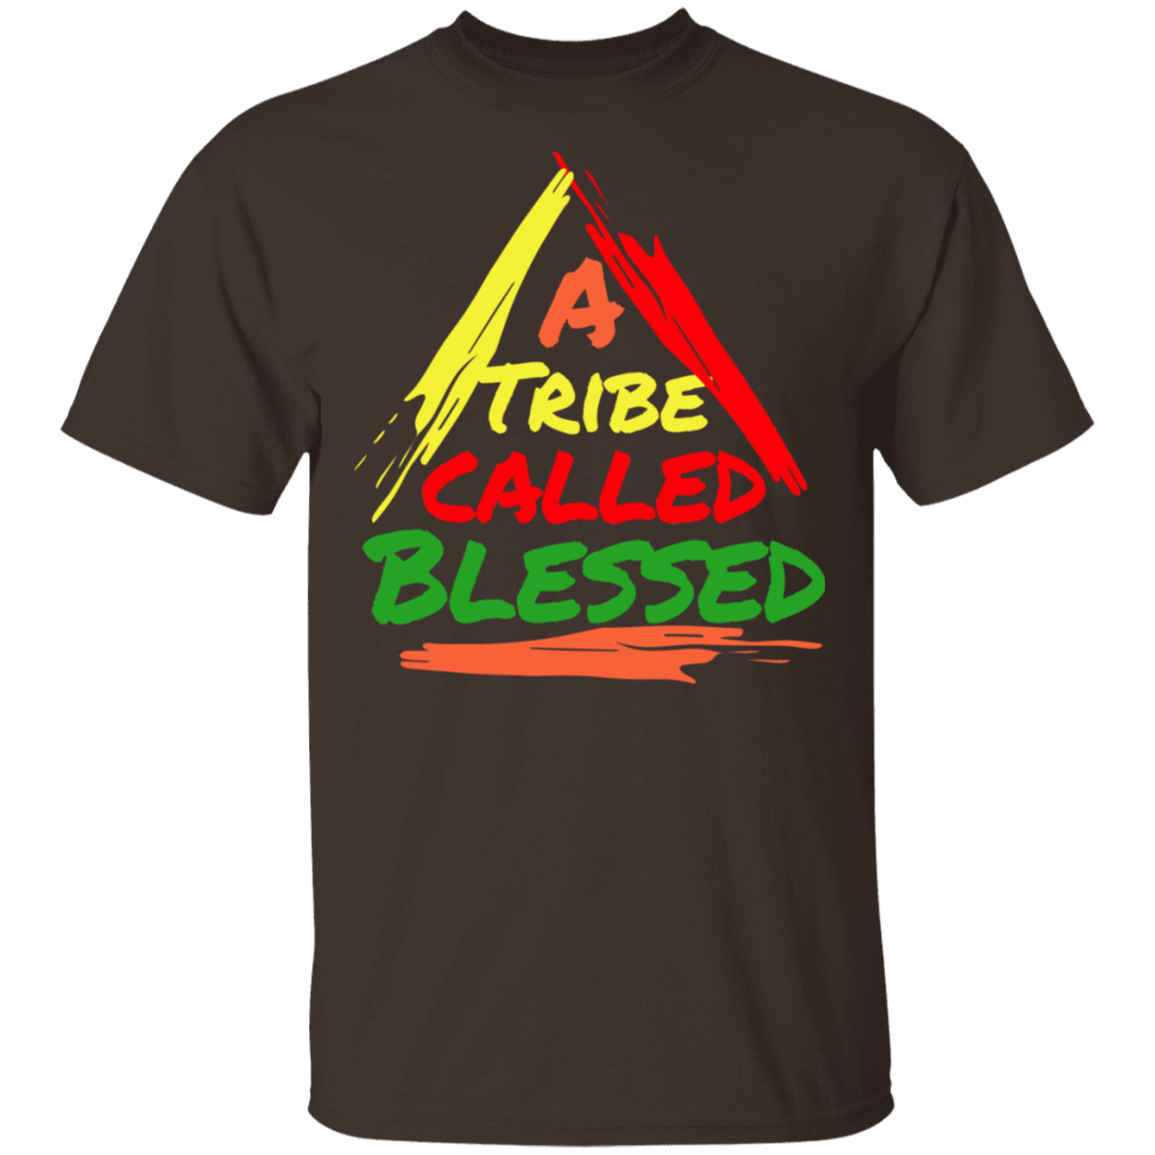 A Tribe Called Blessed T-Shirts, Hoodies 22-2283-80183267-12087 - Tee Ript